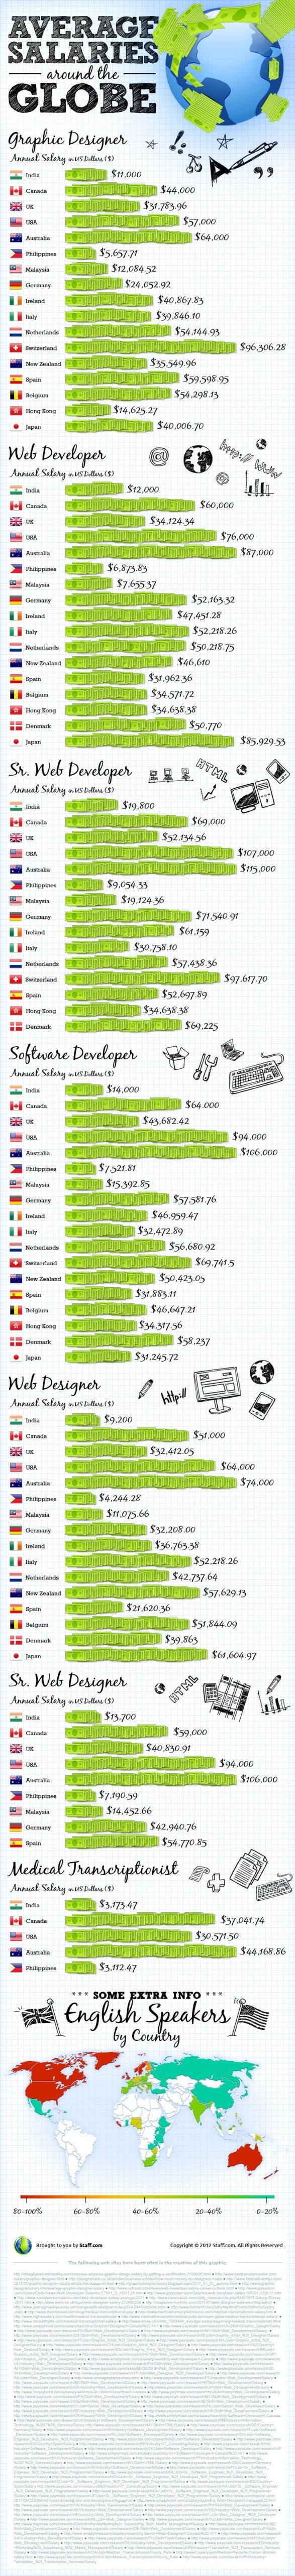 Lovely Annual Salary for A Graphic Designer